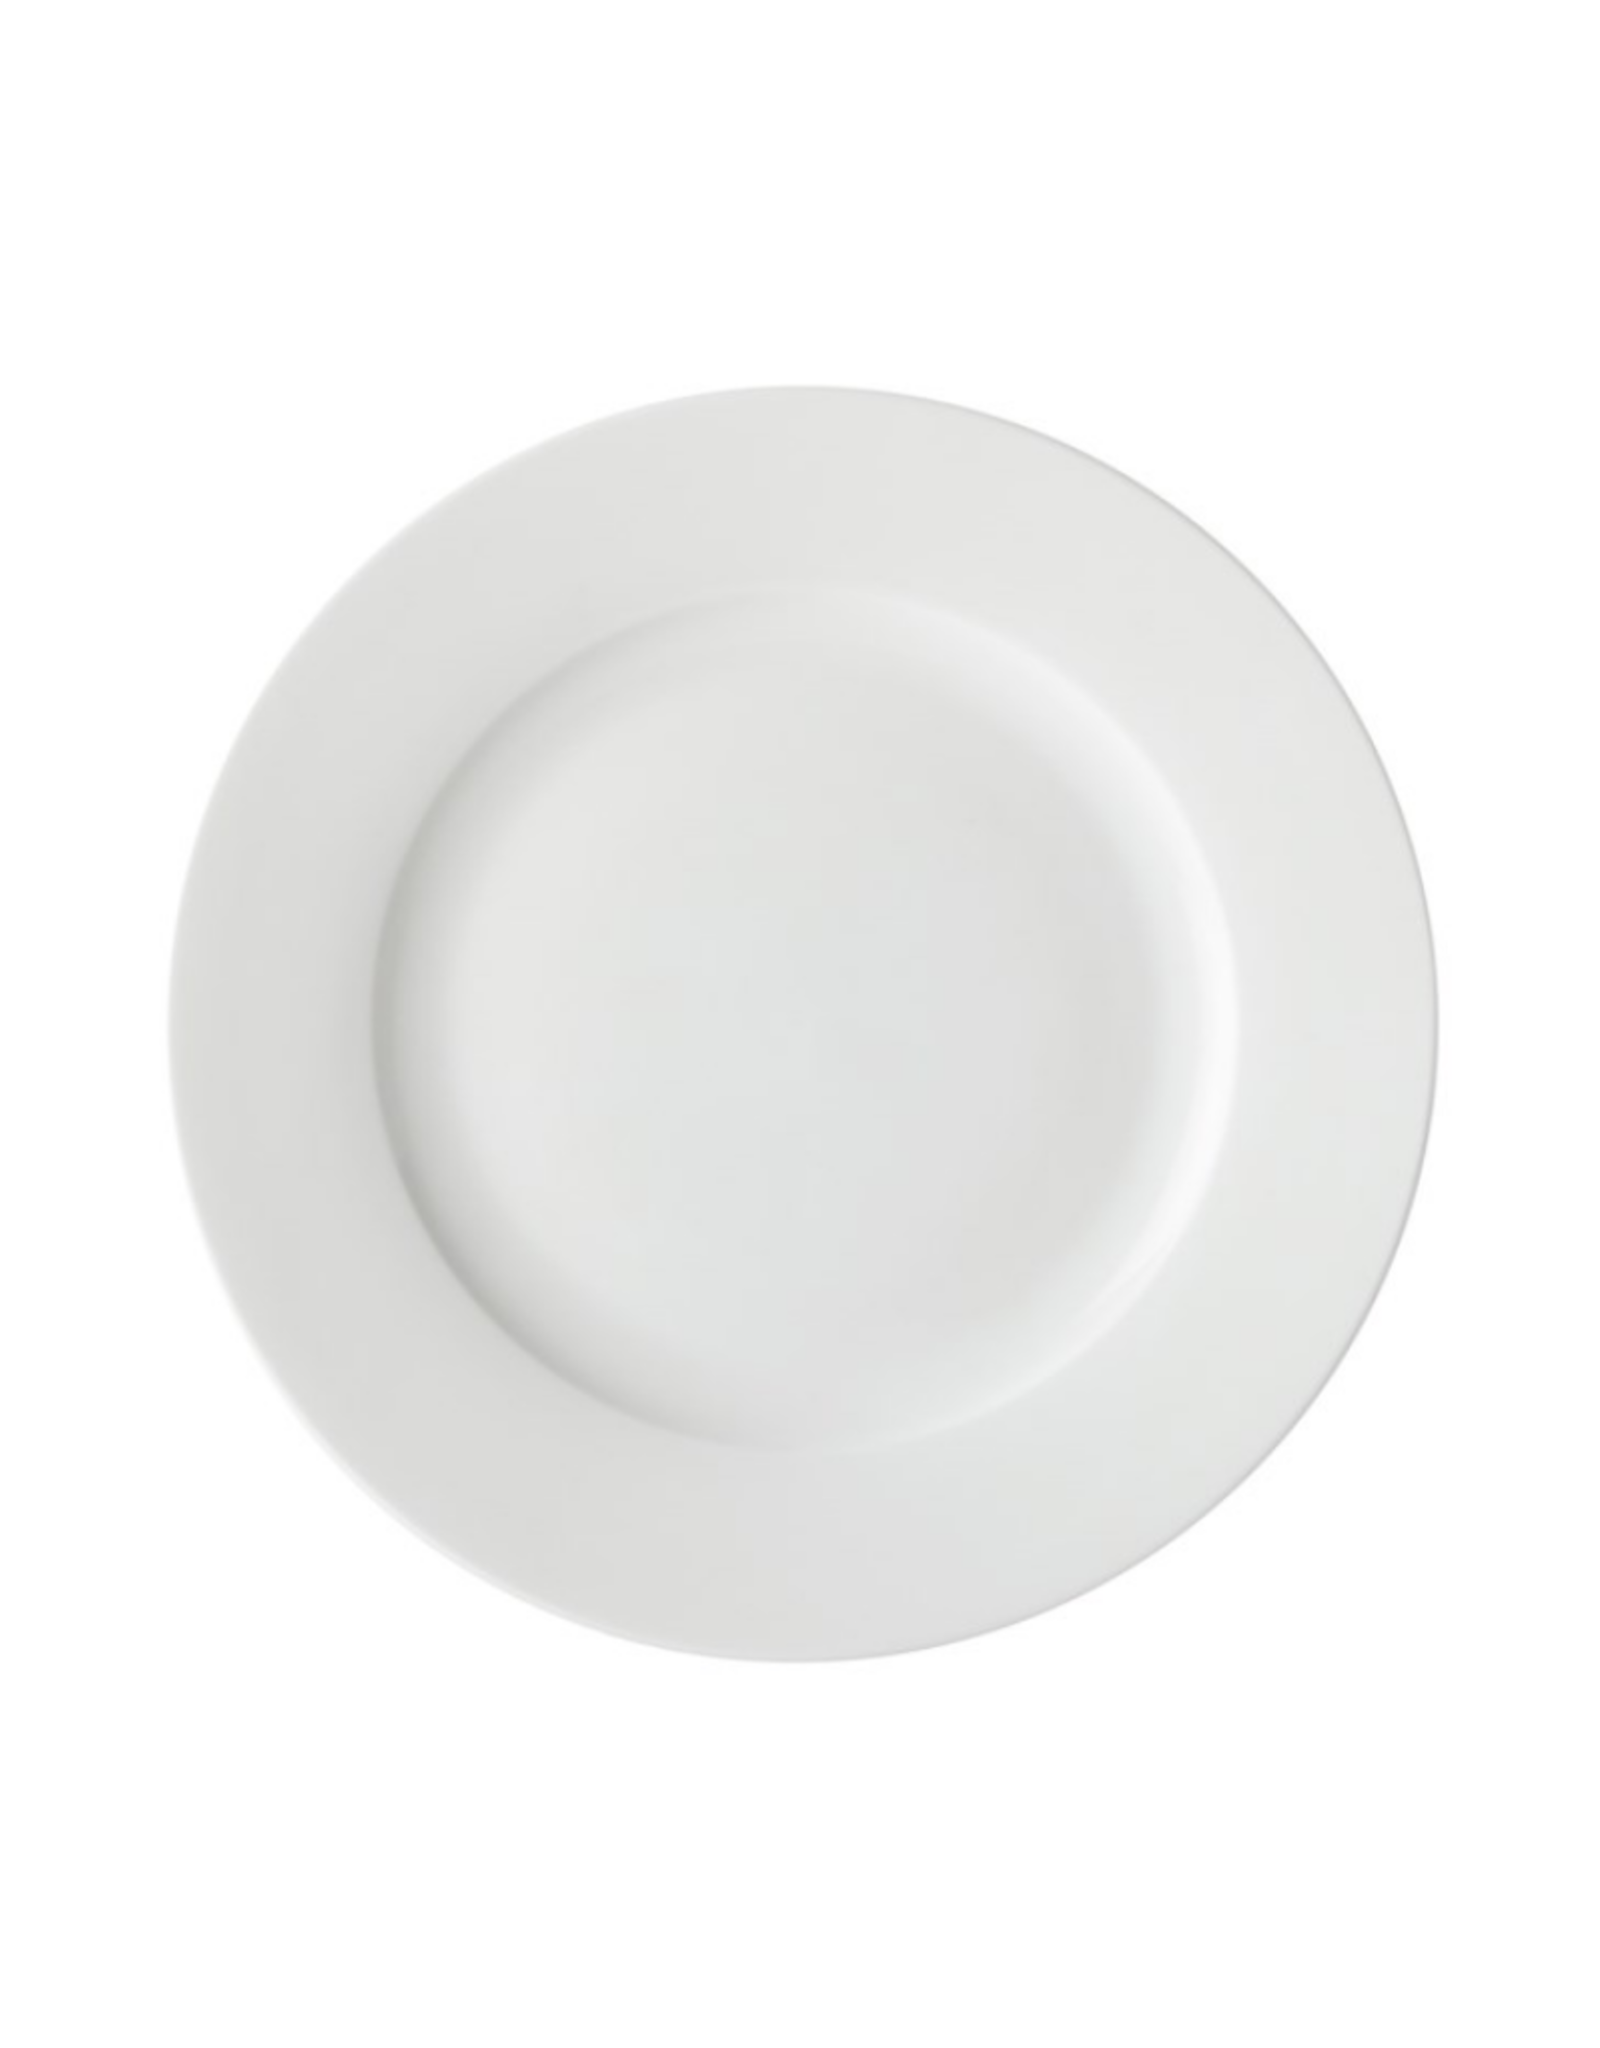 Maxwell Williams Assiette à dîner White Basics rim 27.5cm